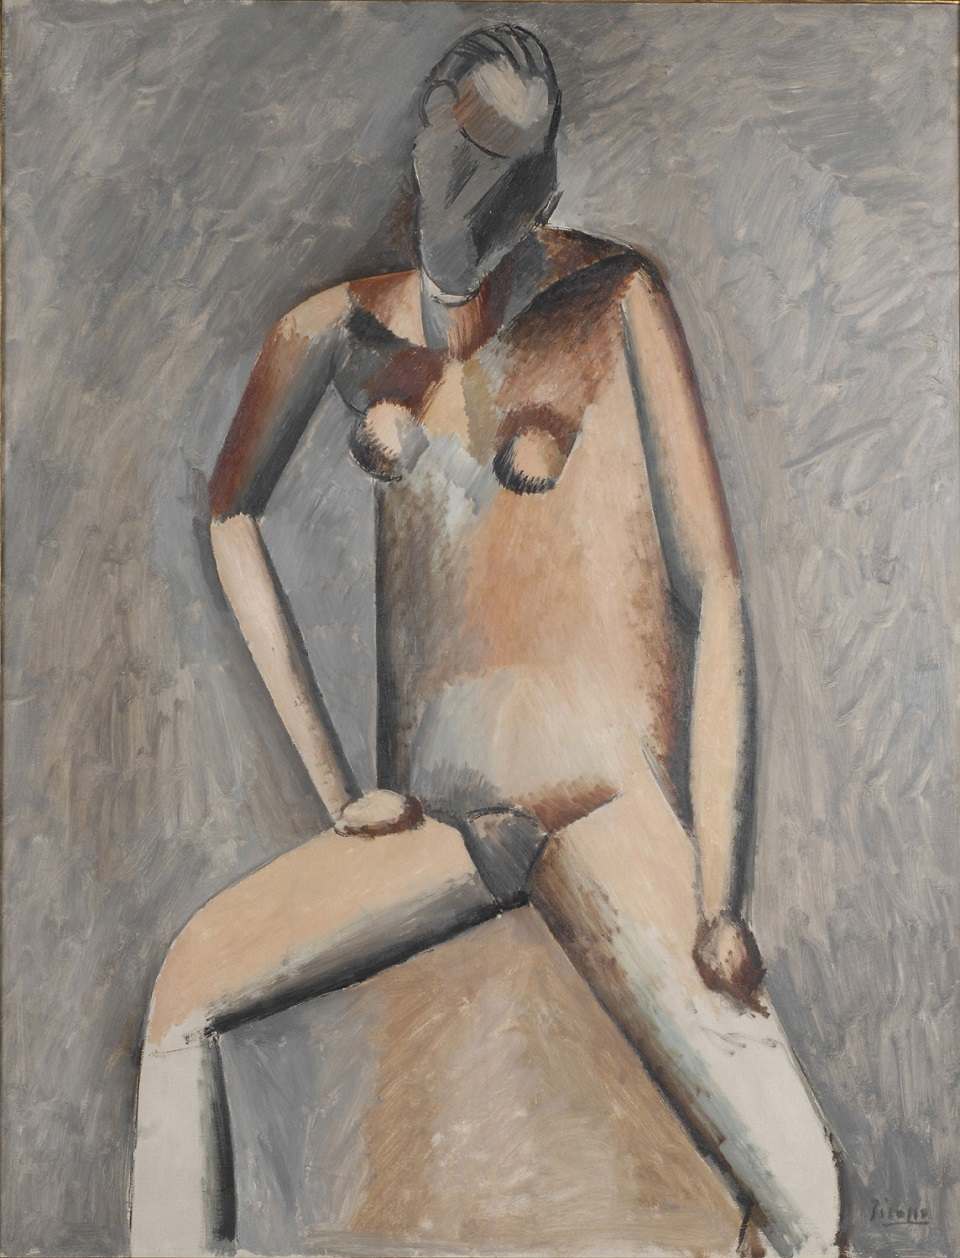 Picasso 1908-1909 Seated Female Nude